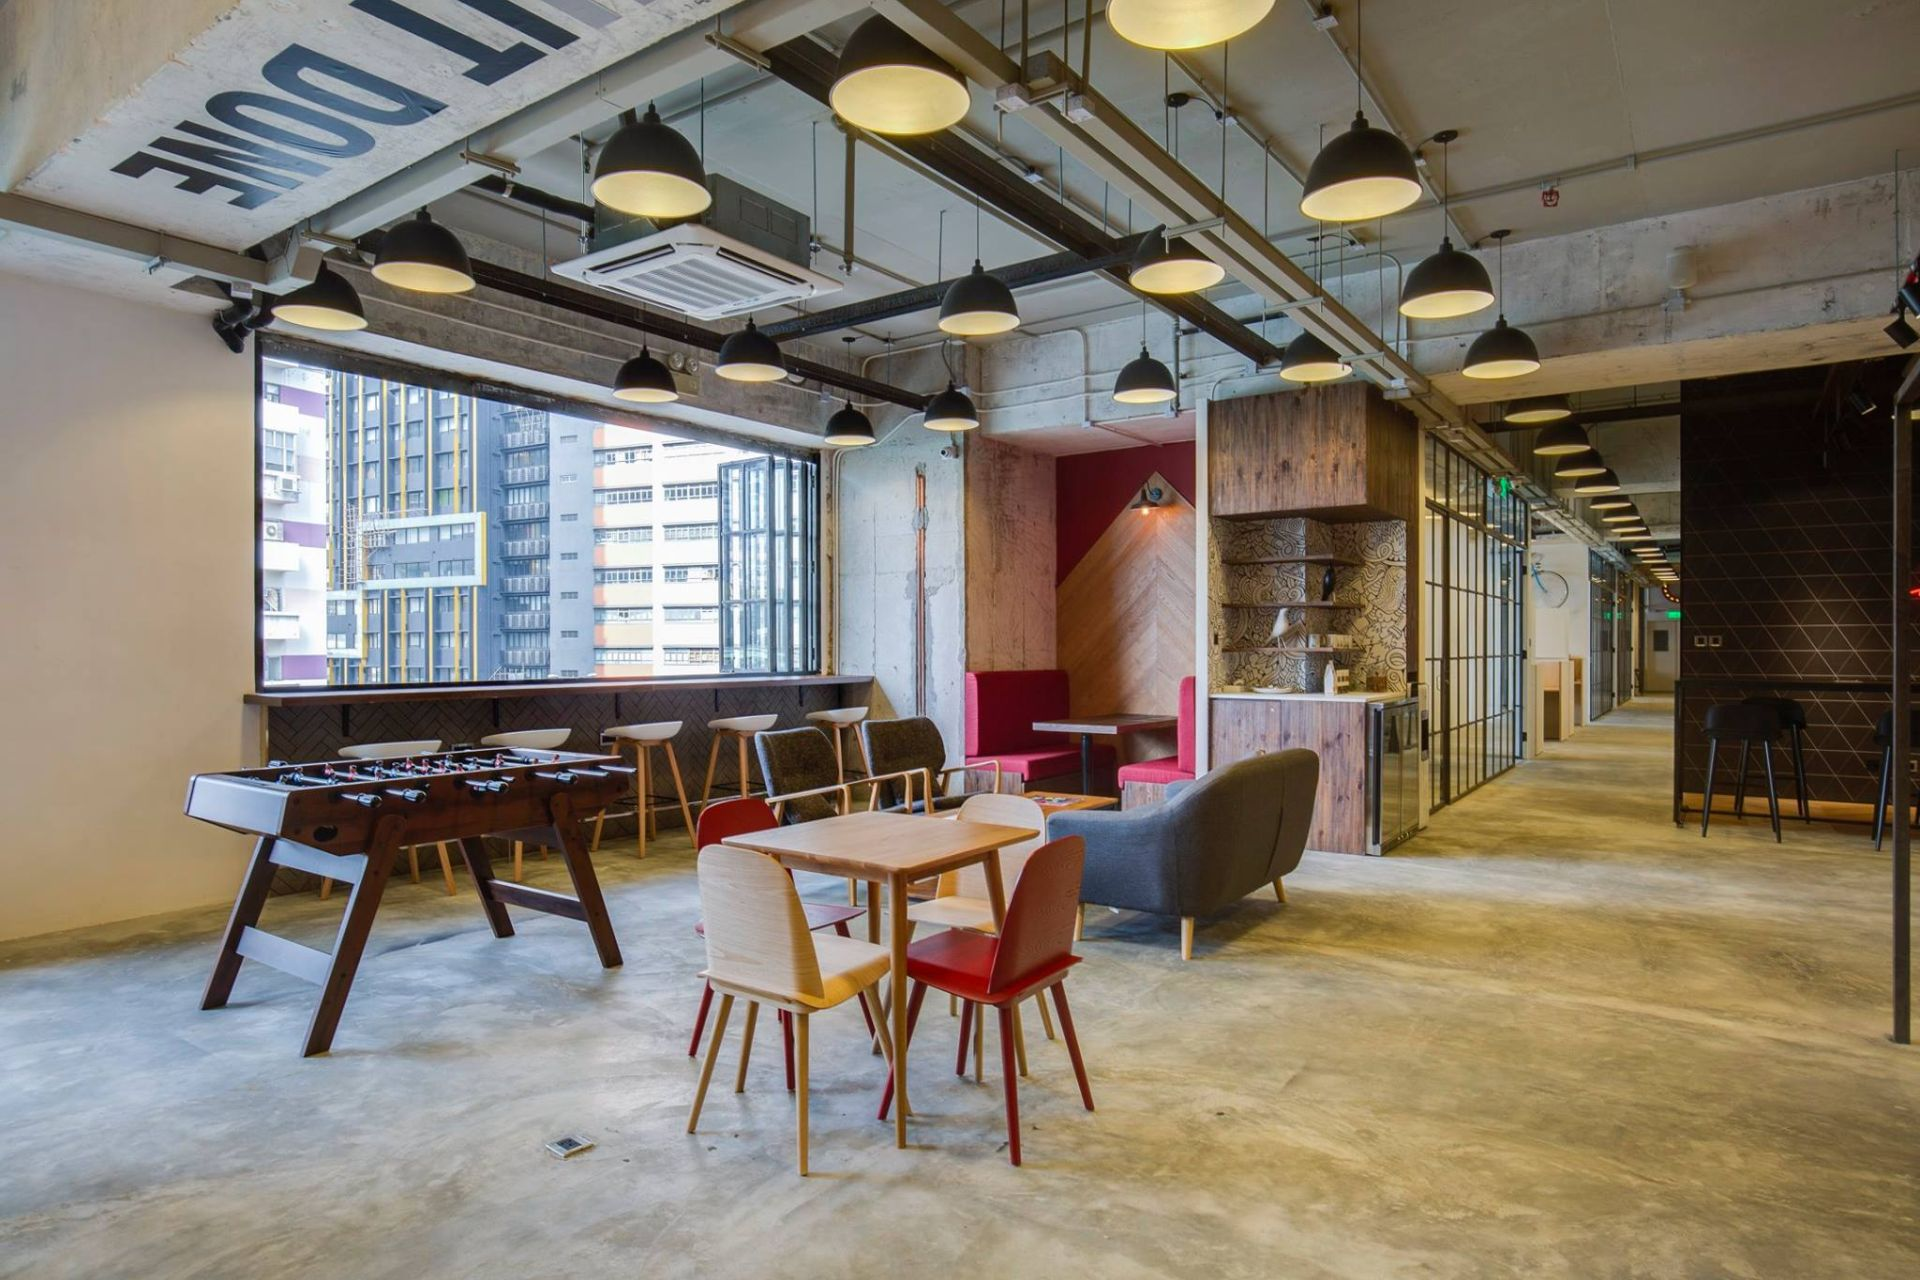 CAMPFIRE.WORK: PROVIDING COWORKING SPACES TO STARTUPS IN HONG KONG